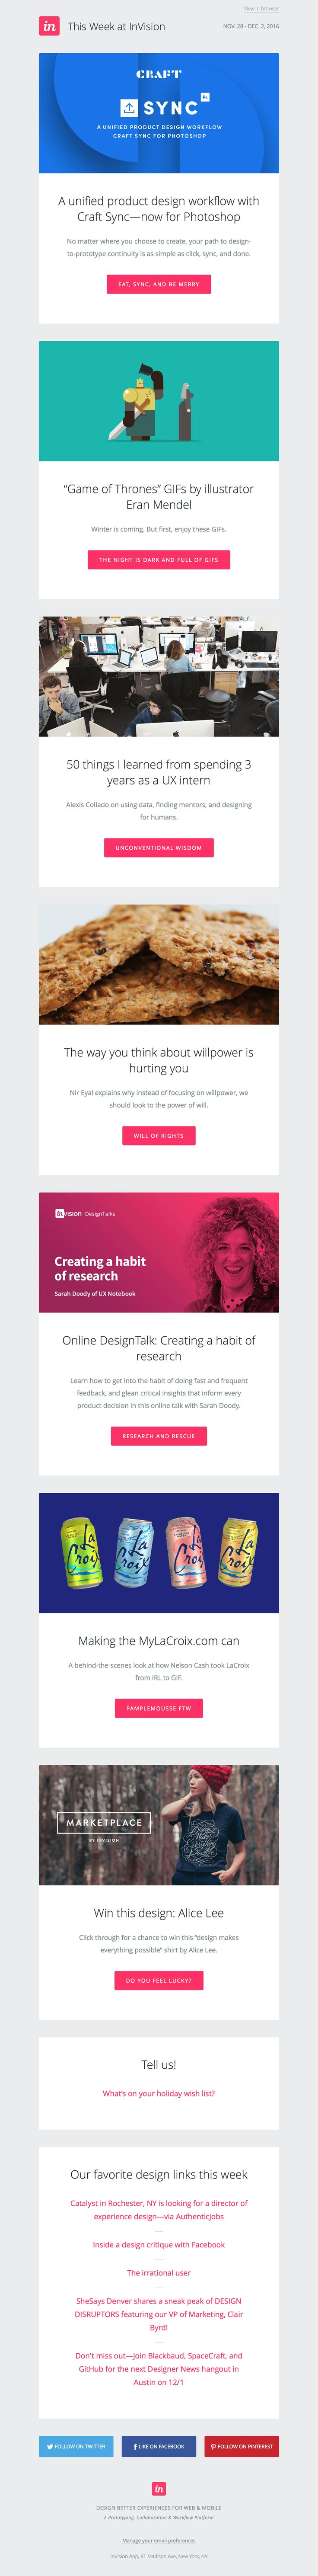 Newsletter responsive Invision (approche mobile first)